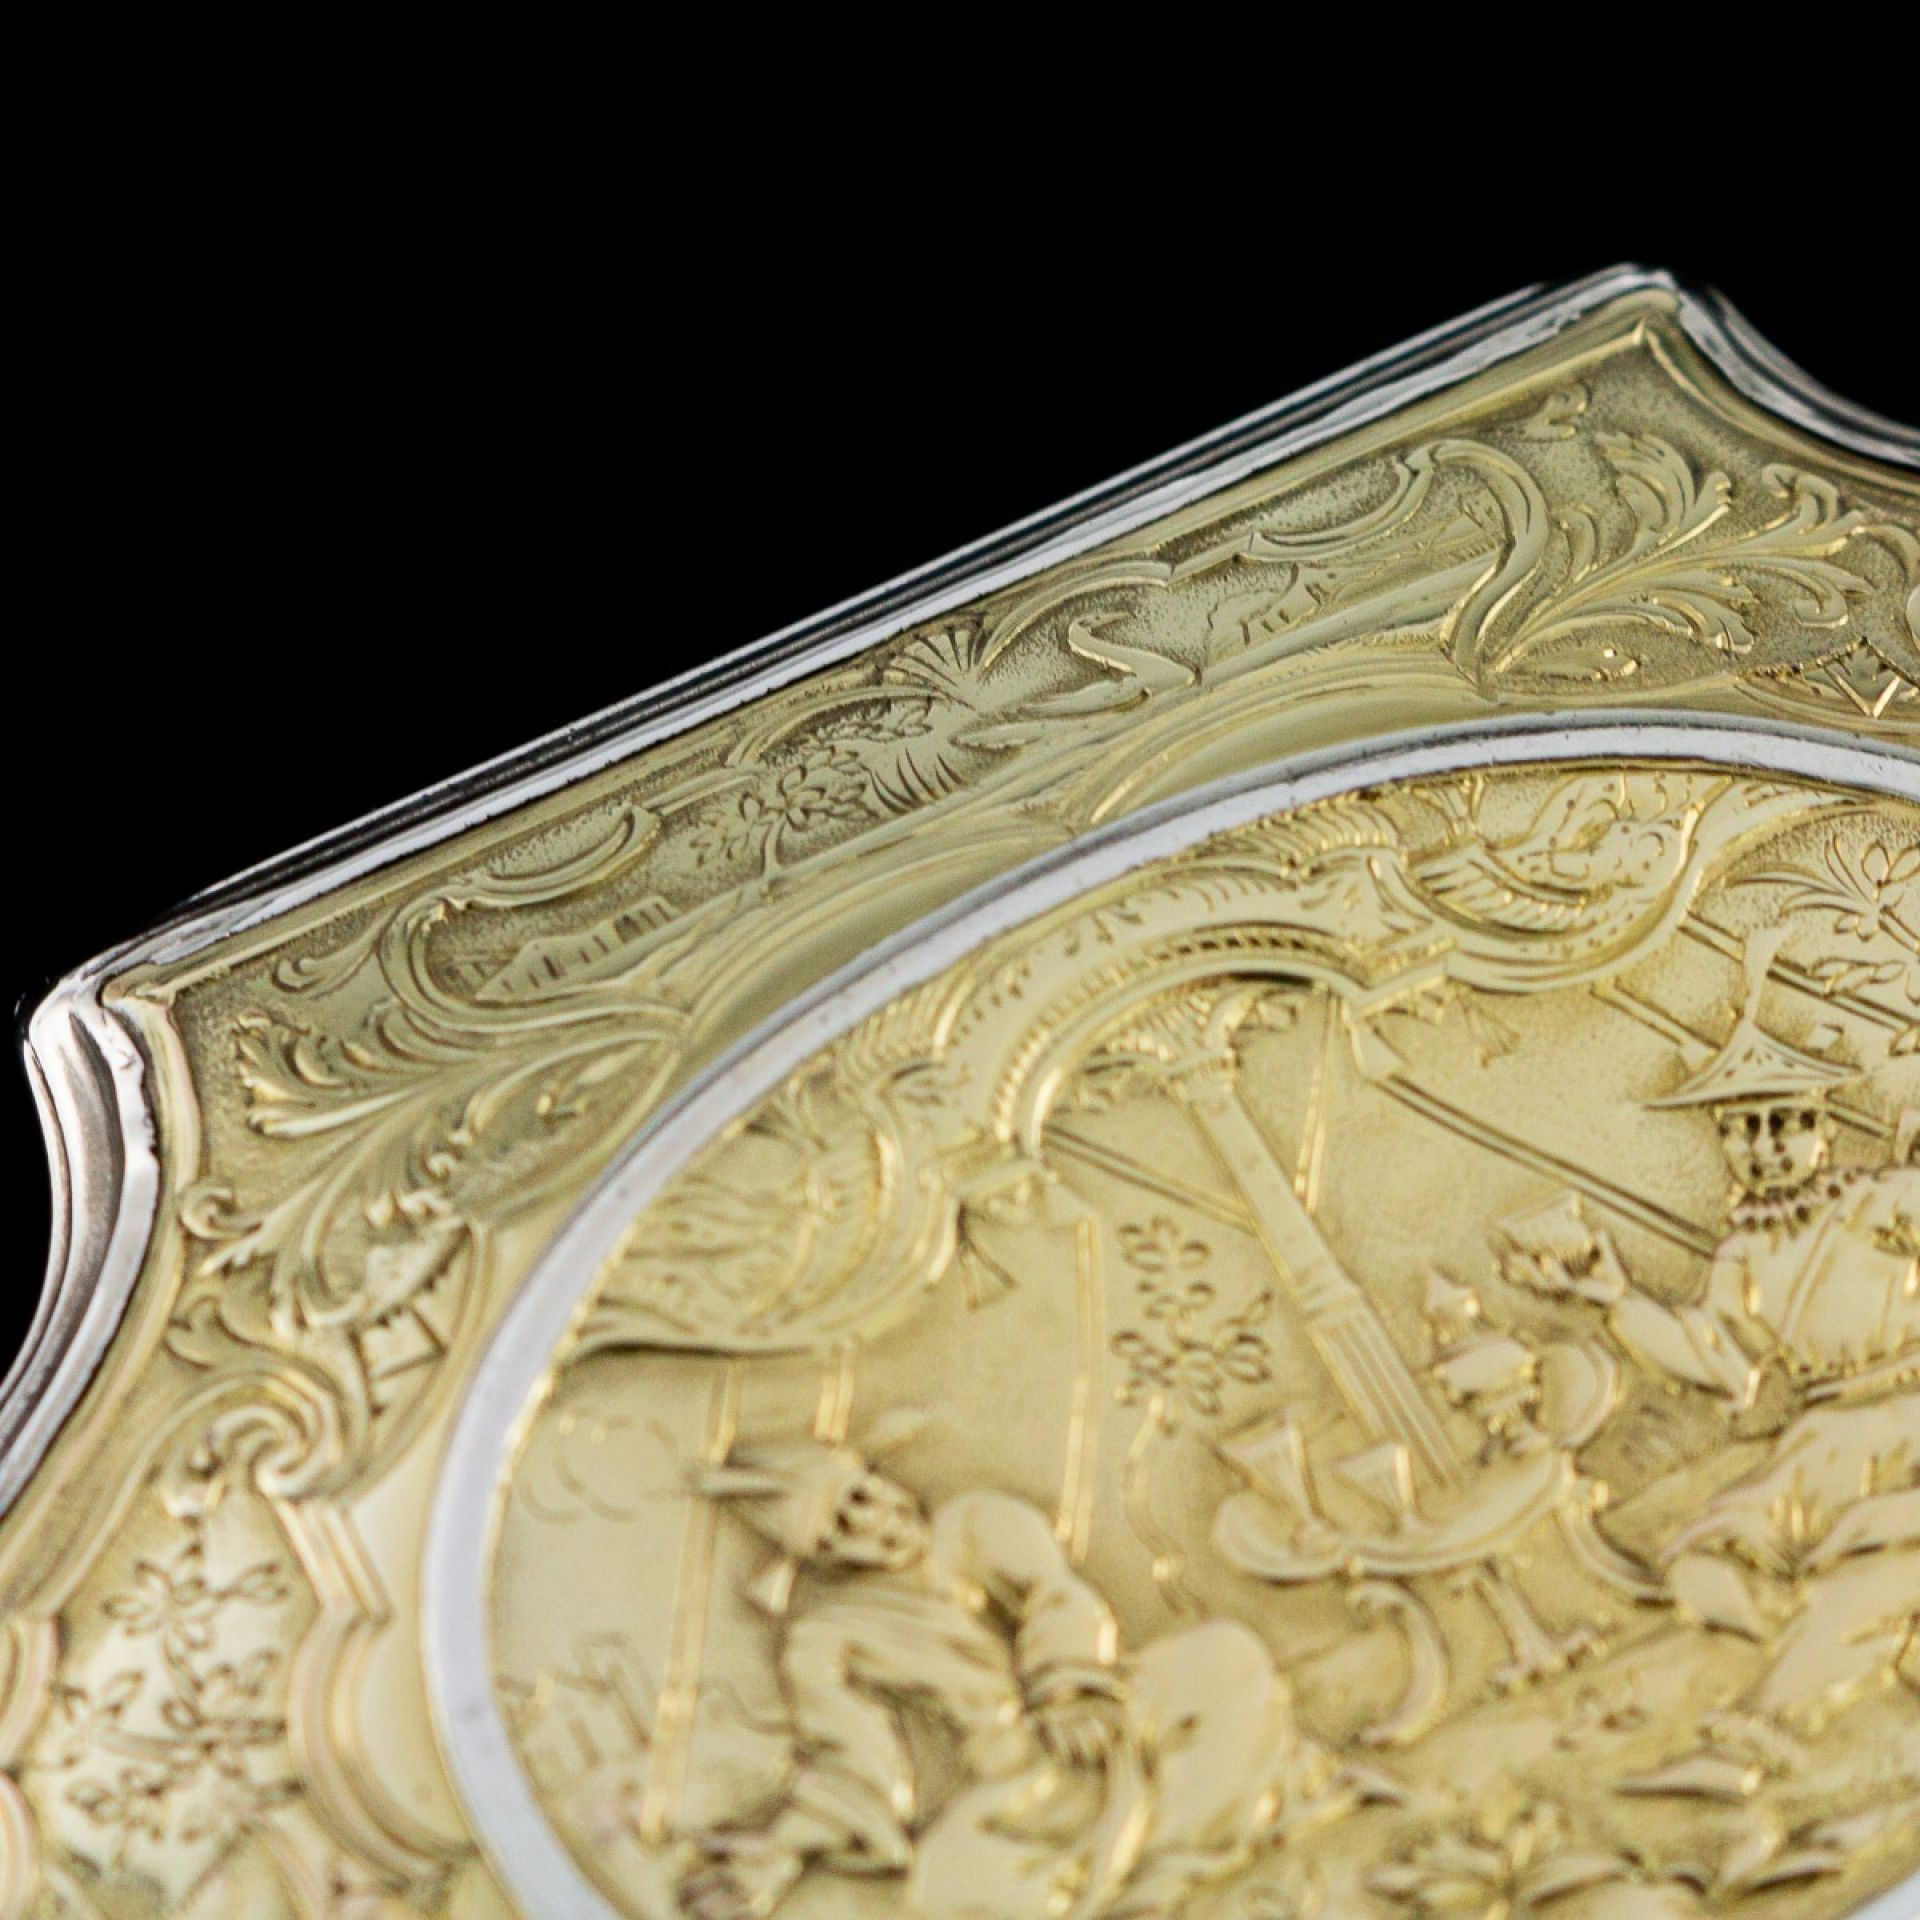 ANTIQUE 18thC GERMAN 12K SOLID GOLD & SILVER SNUFF BOX c.1720